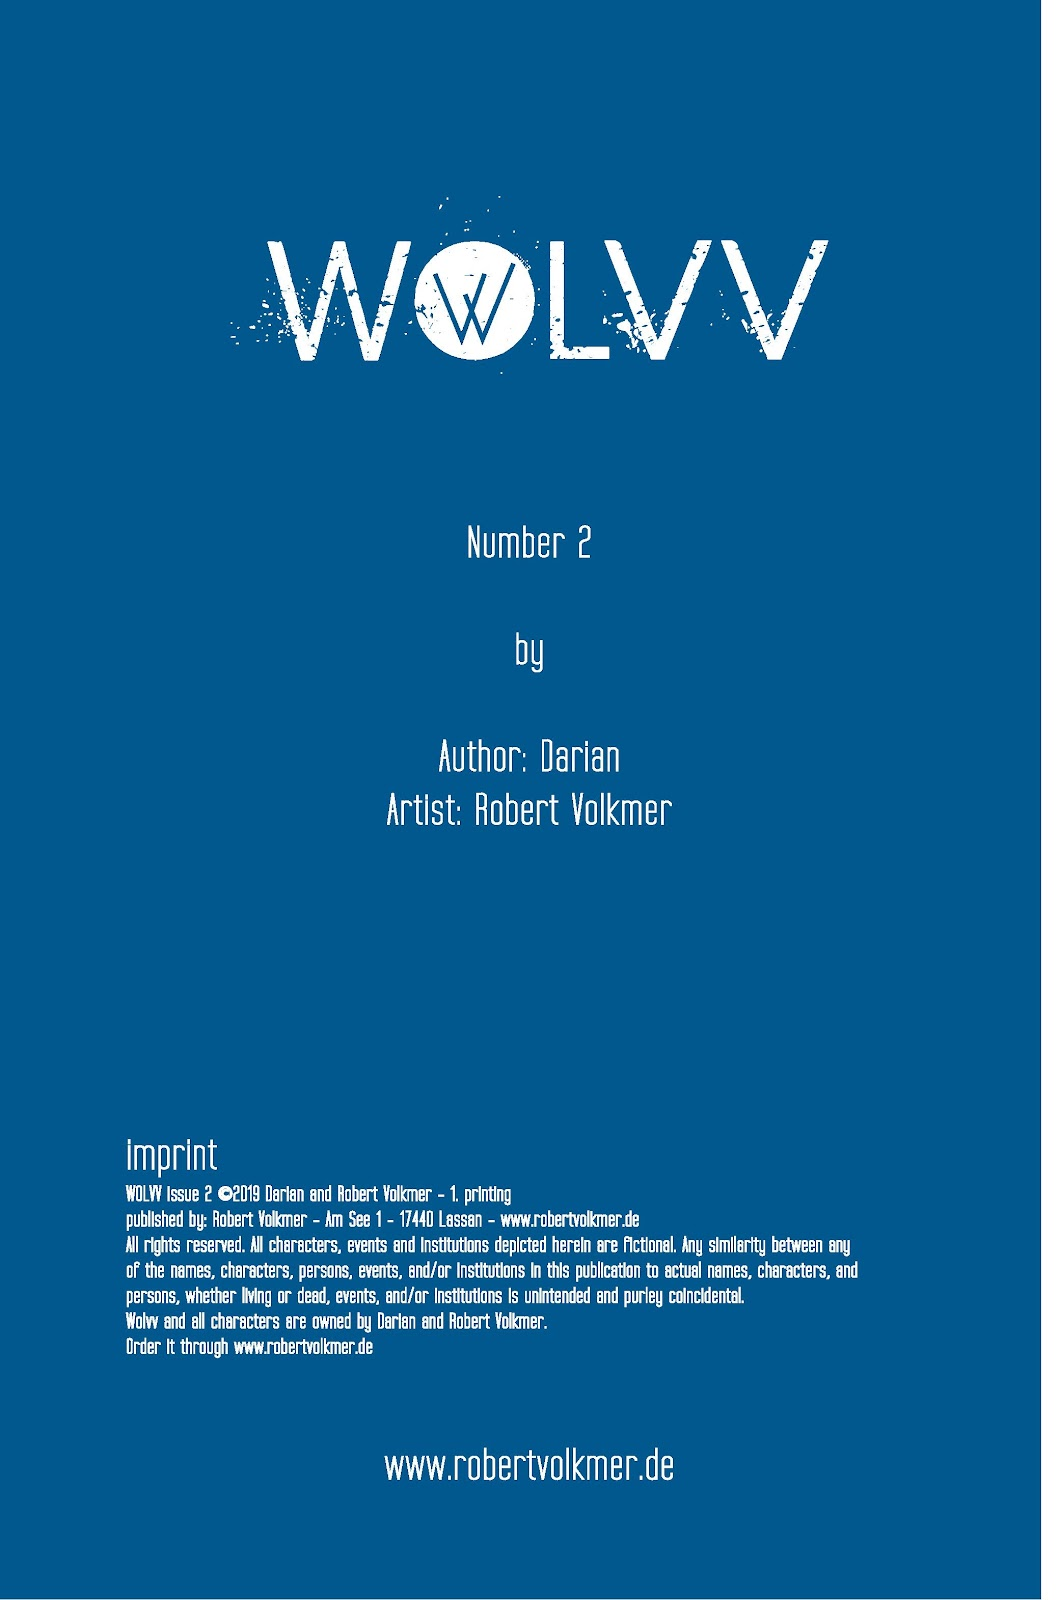 Read online Wolvv comic -  Issue #2 - 2